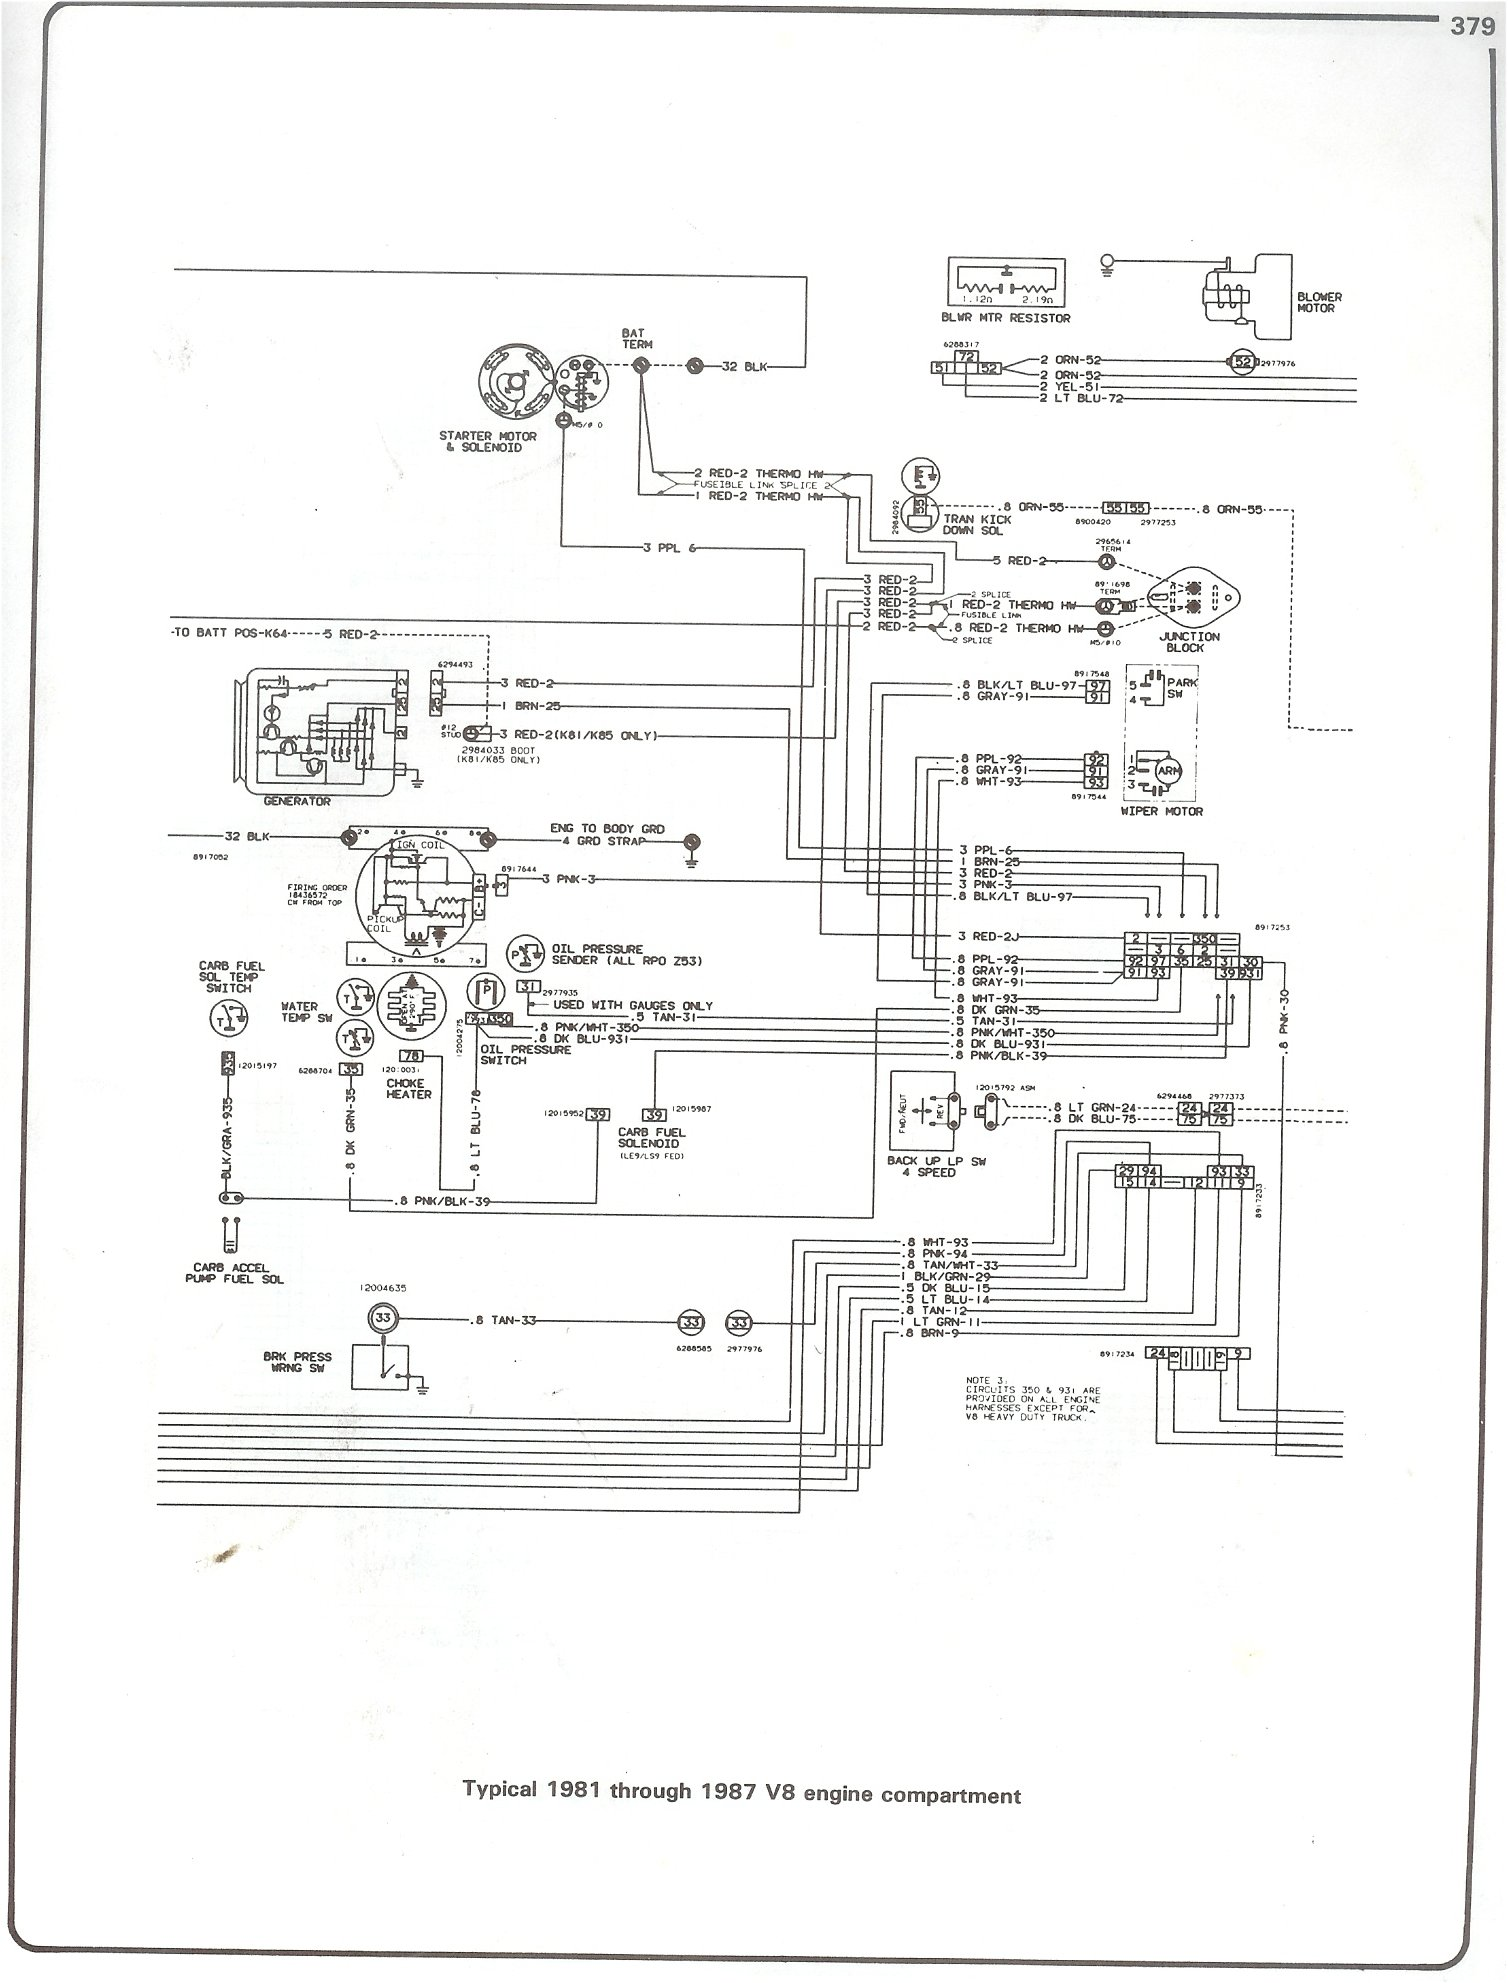 81 87_V8_engine complete 73 87 wiring diagrams  at panicattacktreatment.co